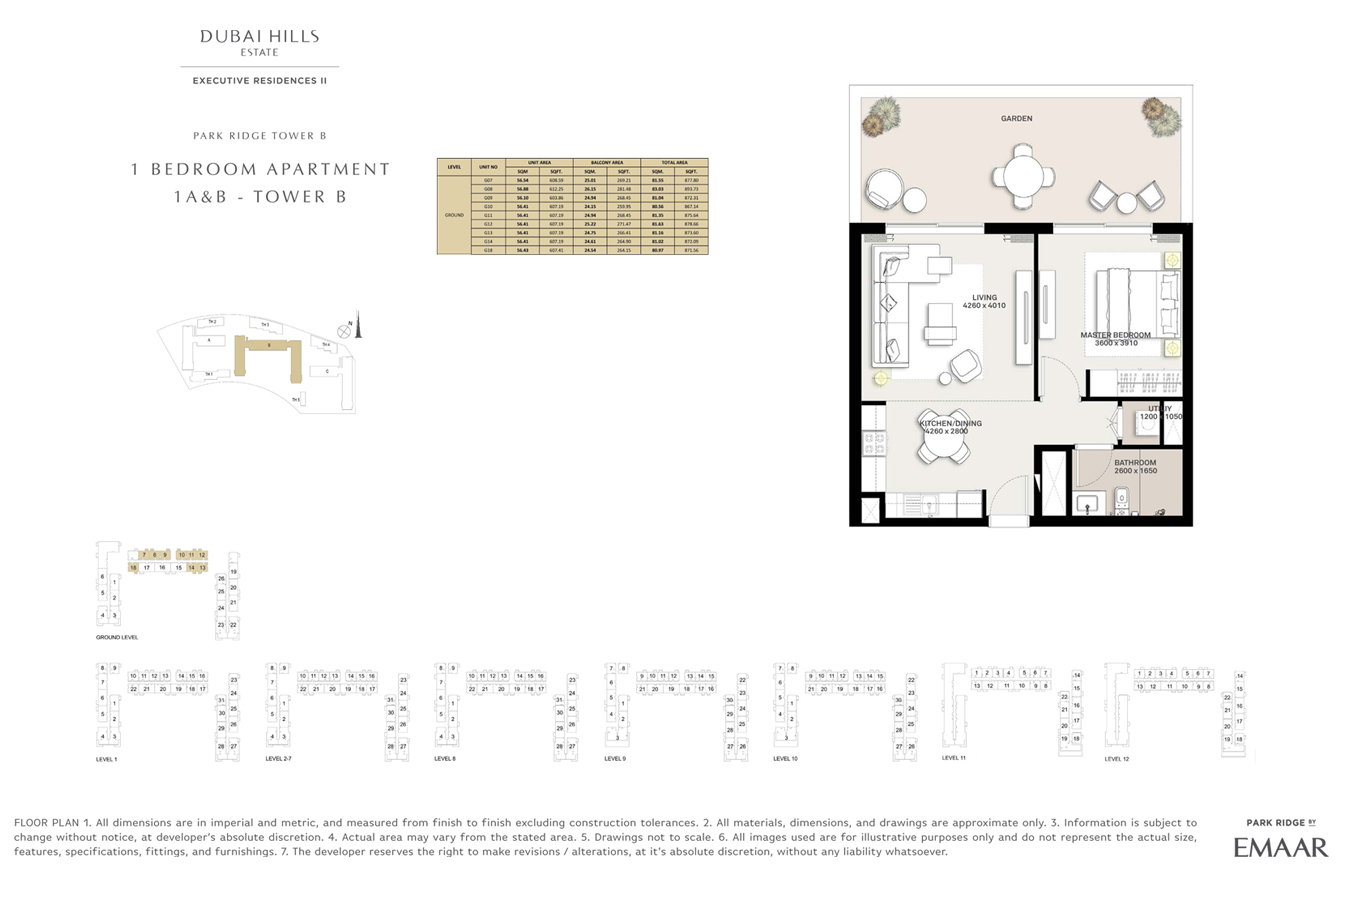 1 Bedroom Type 1A & B, Tower B, Size 871 Sq Ft